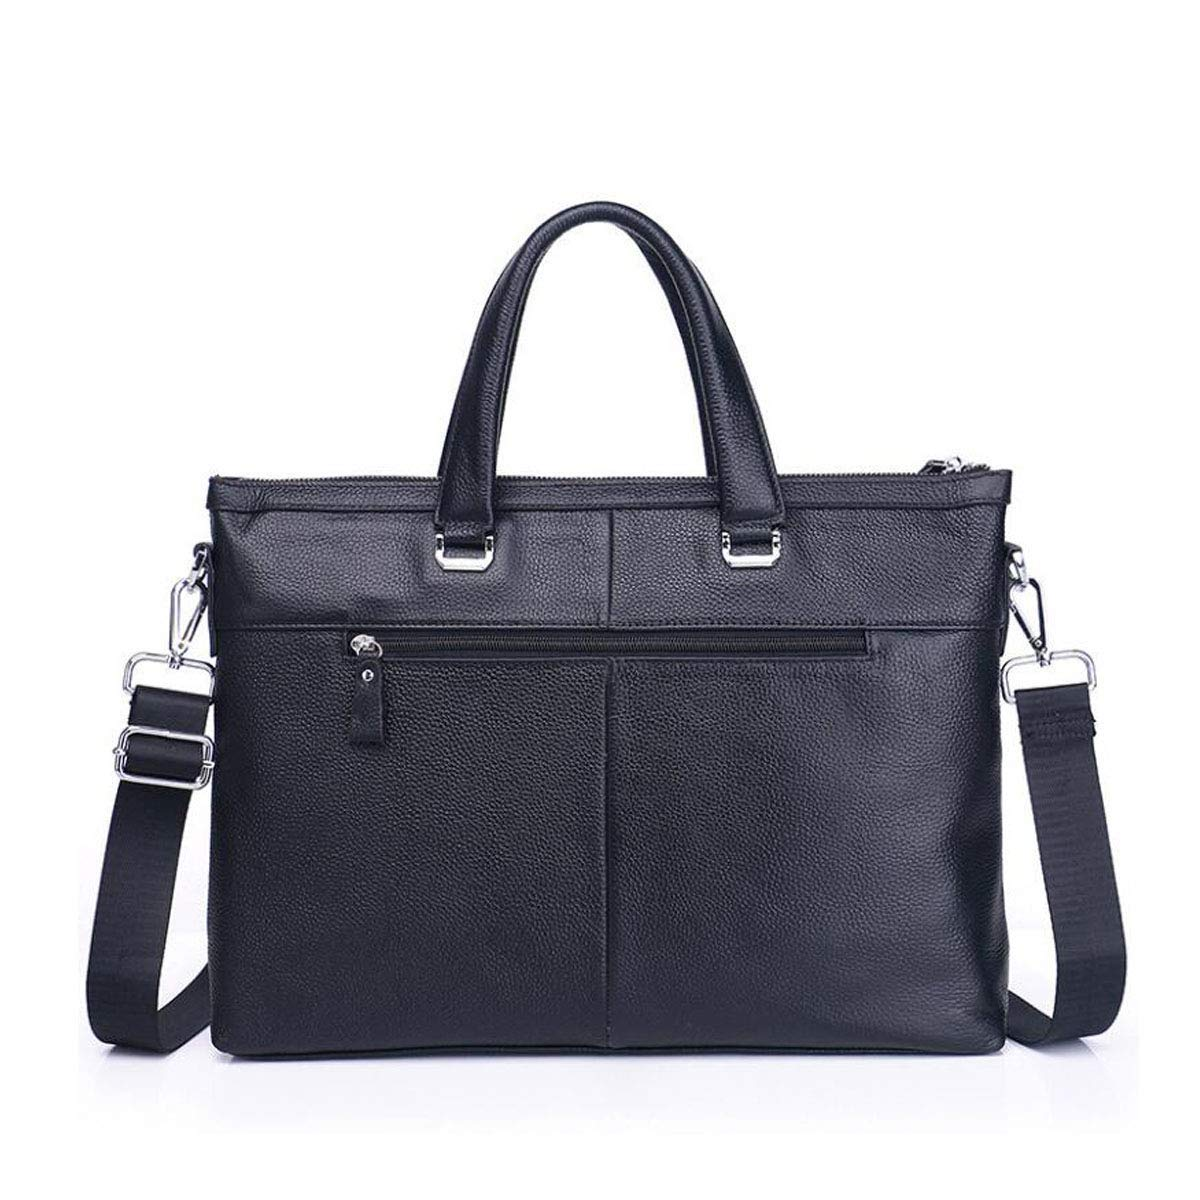 Briefcase Black Leather Mens Shoulder Messenger Bag Color : Black Color : Black Size: 38528cm Concise Suitable for All Occasions